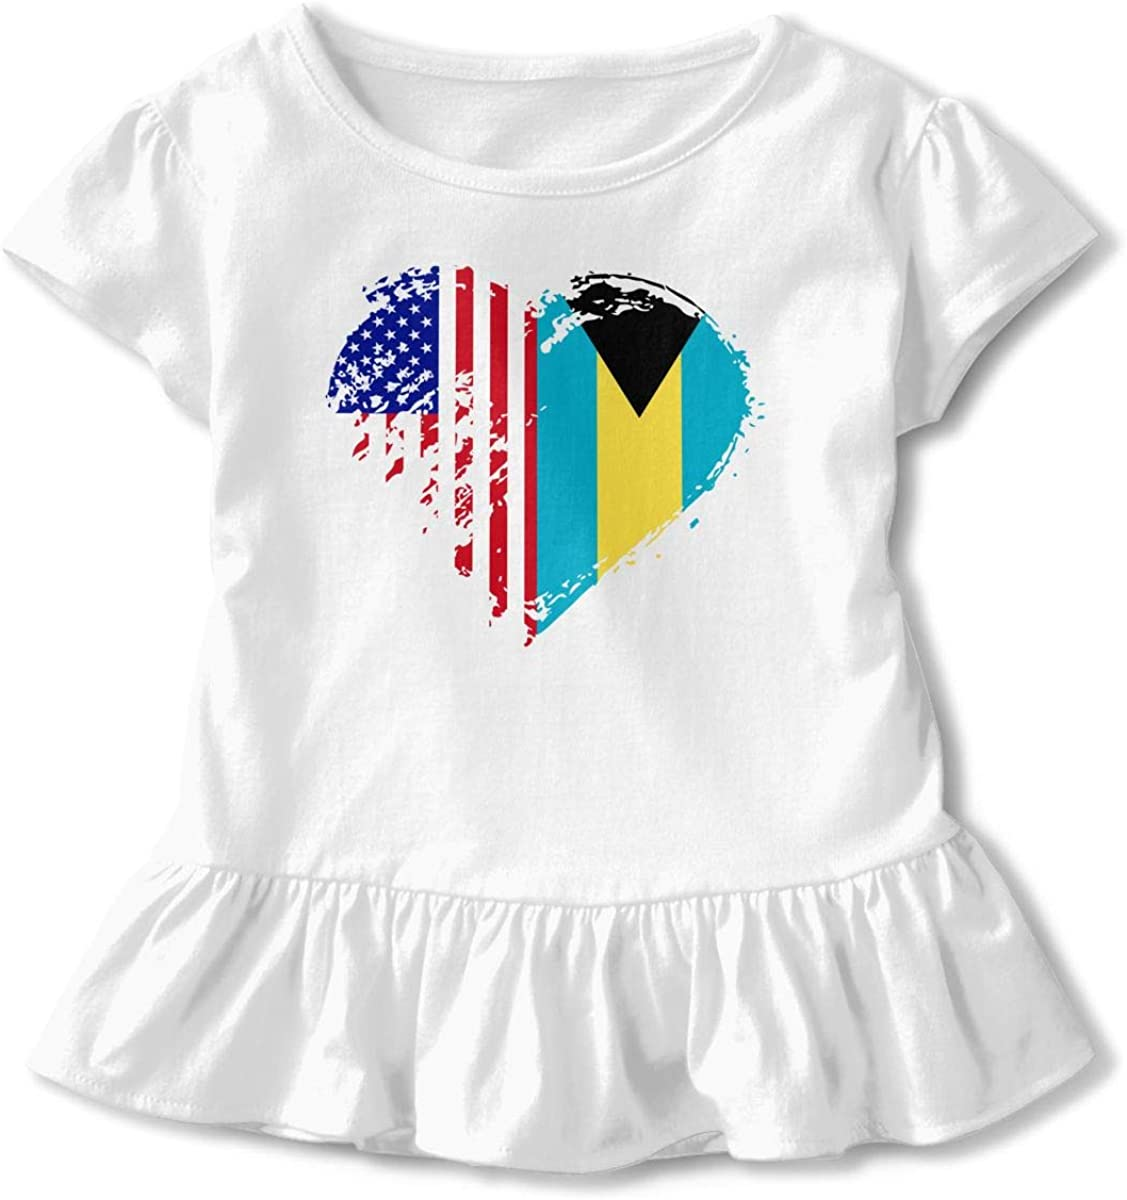 26NSHIRT Grungy Bahamas American Flag Heart Little Girls Short Sleeve Cotton Tee